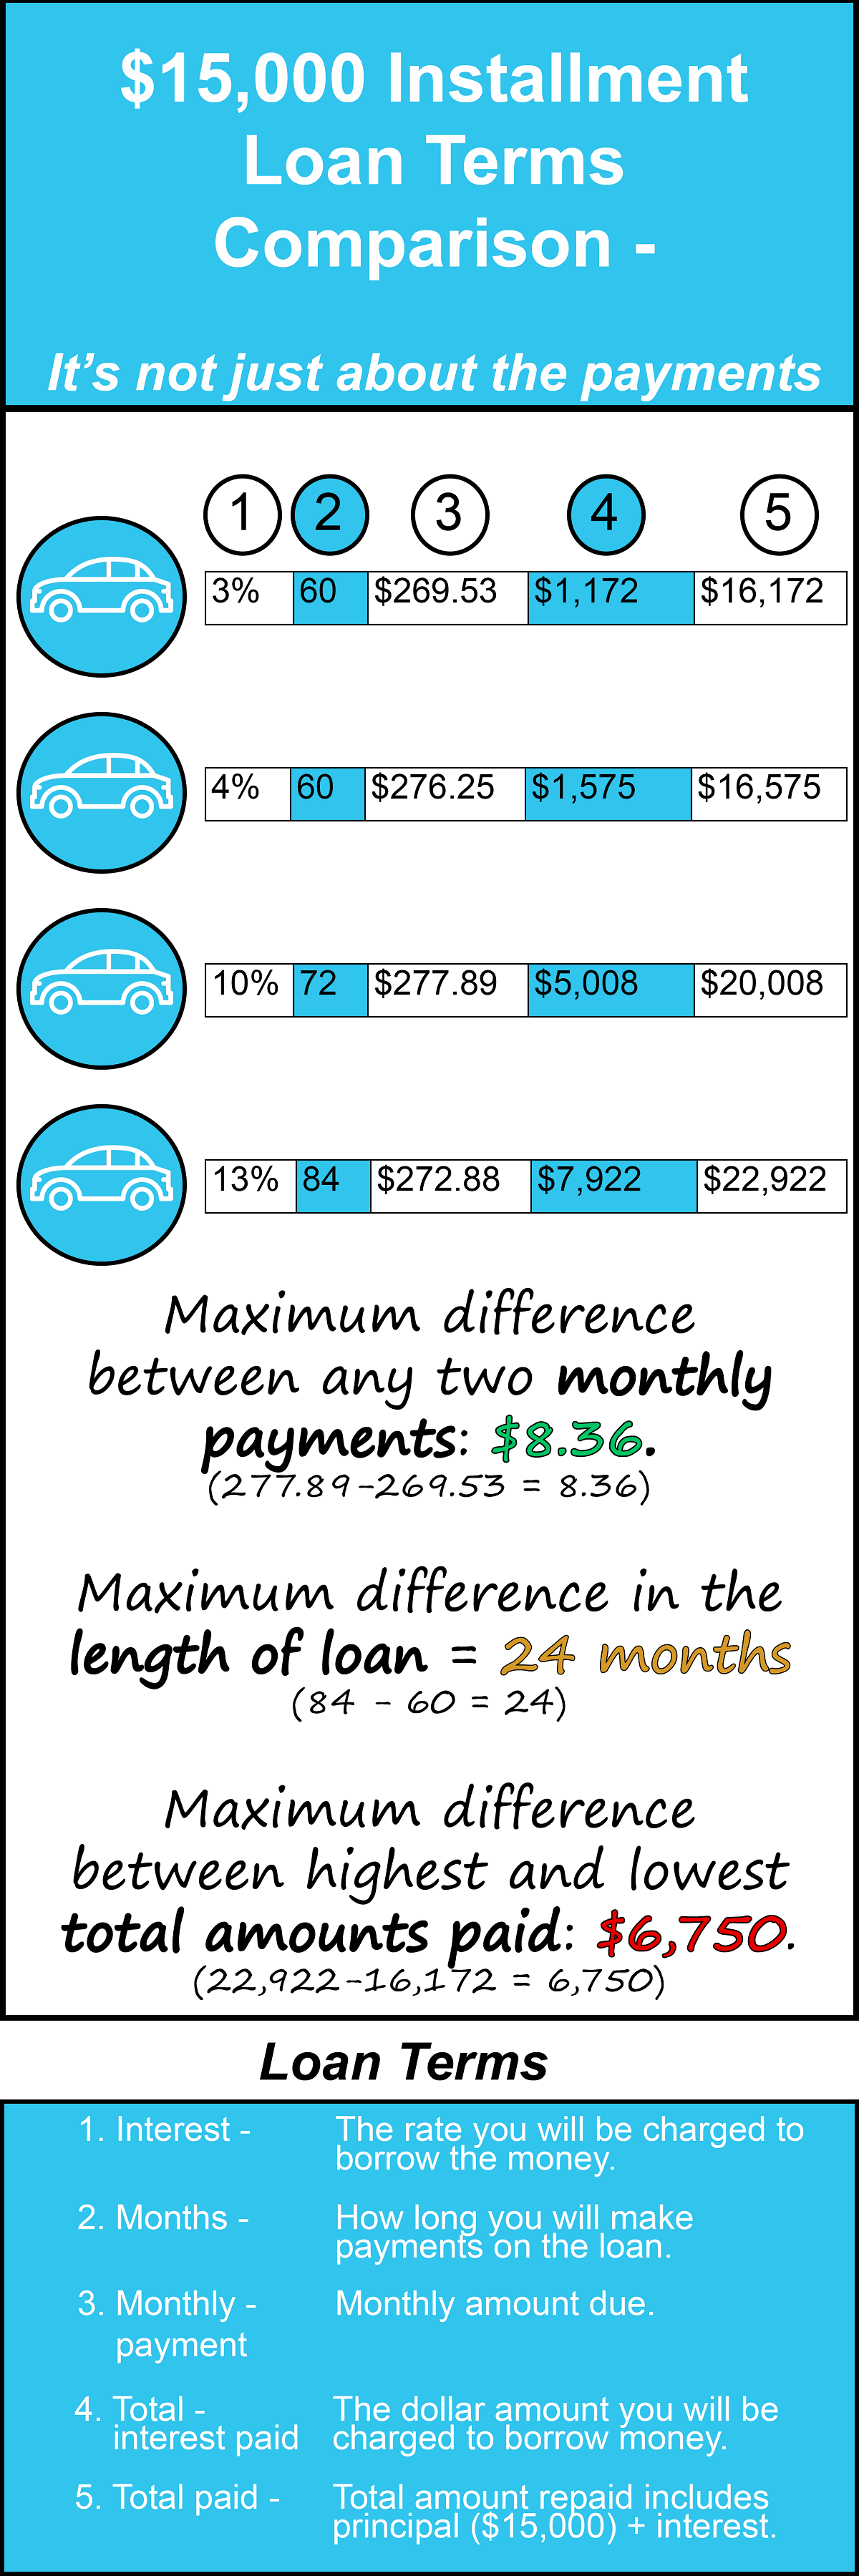 Installment Loan Payoff Comparison